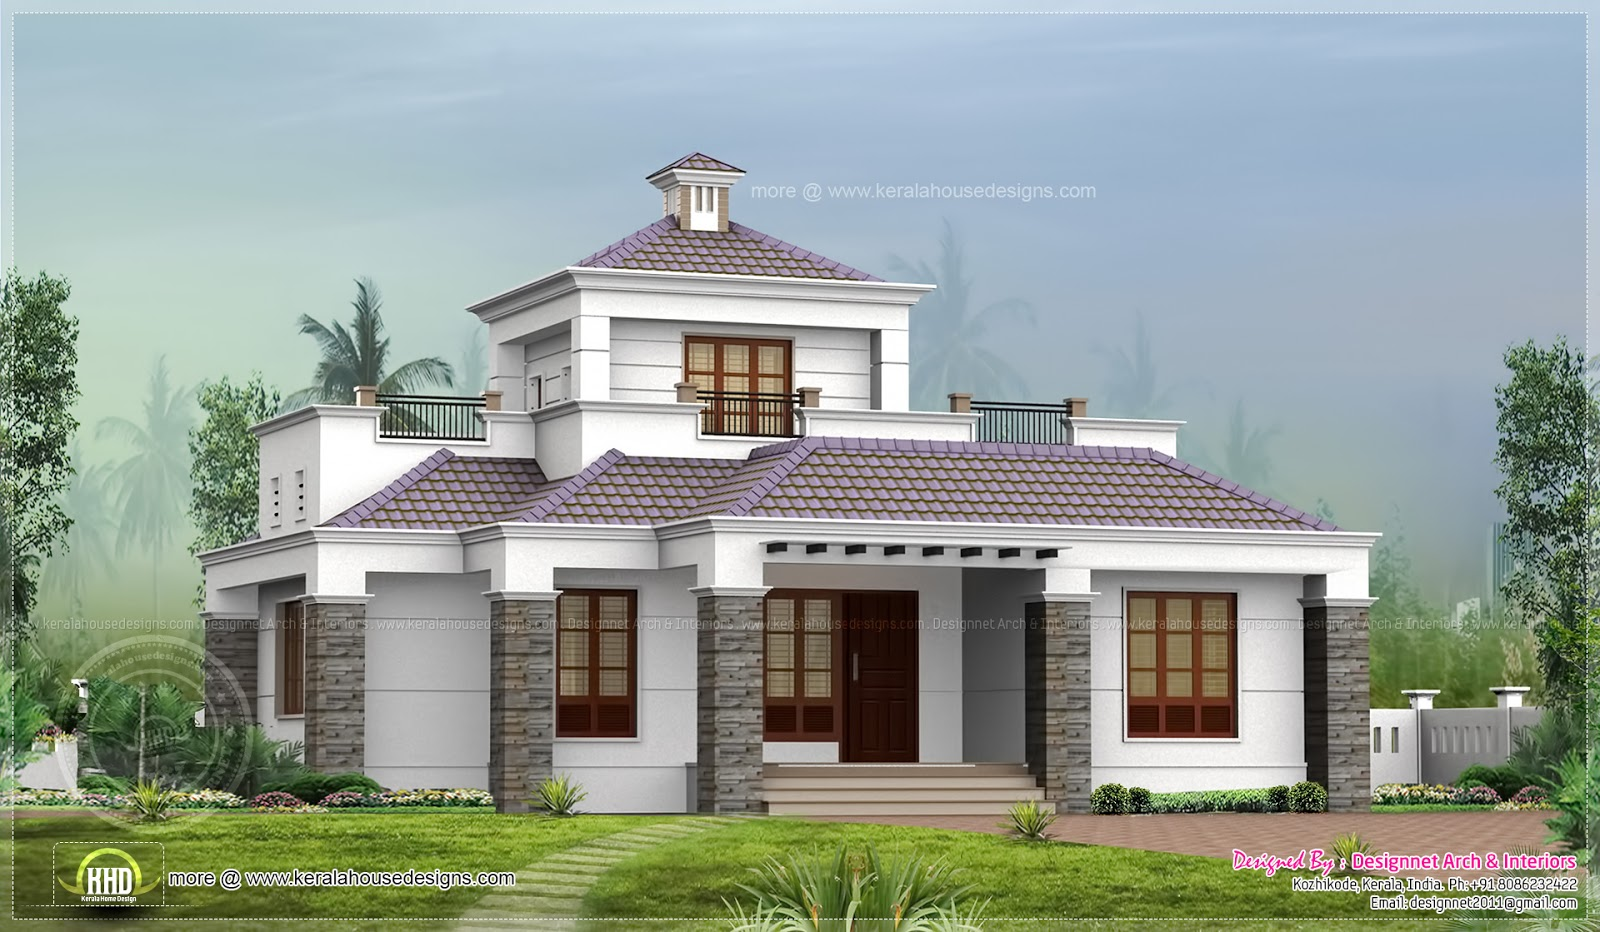 Single floor home with stair room in 1500 sq ft kerala 1500 sq ft house plans 2 story indian style